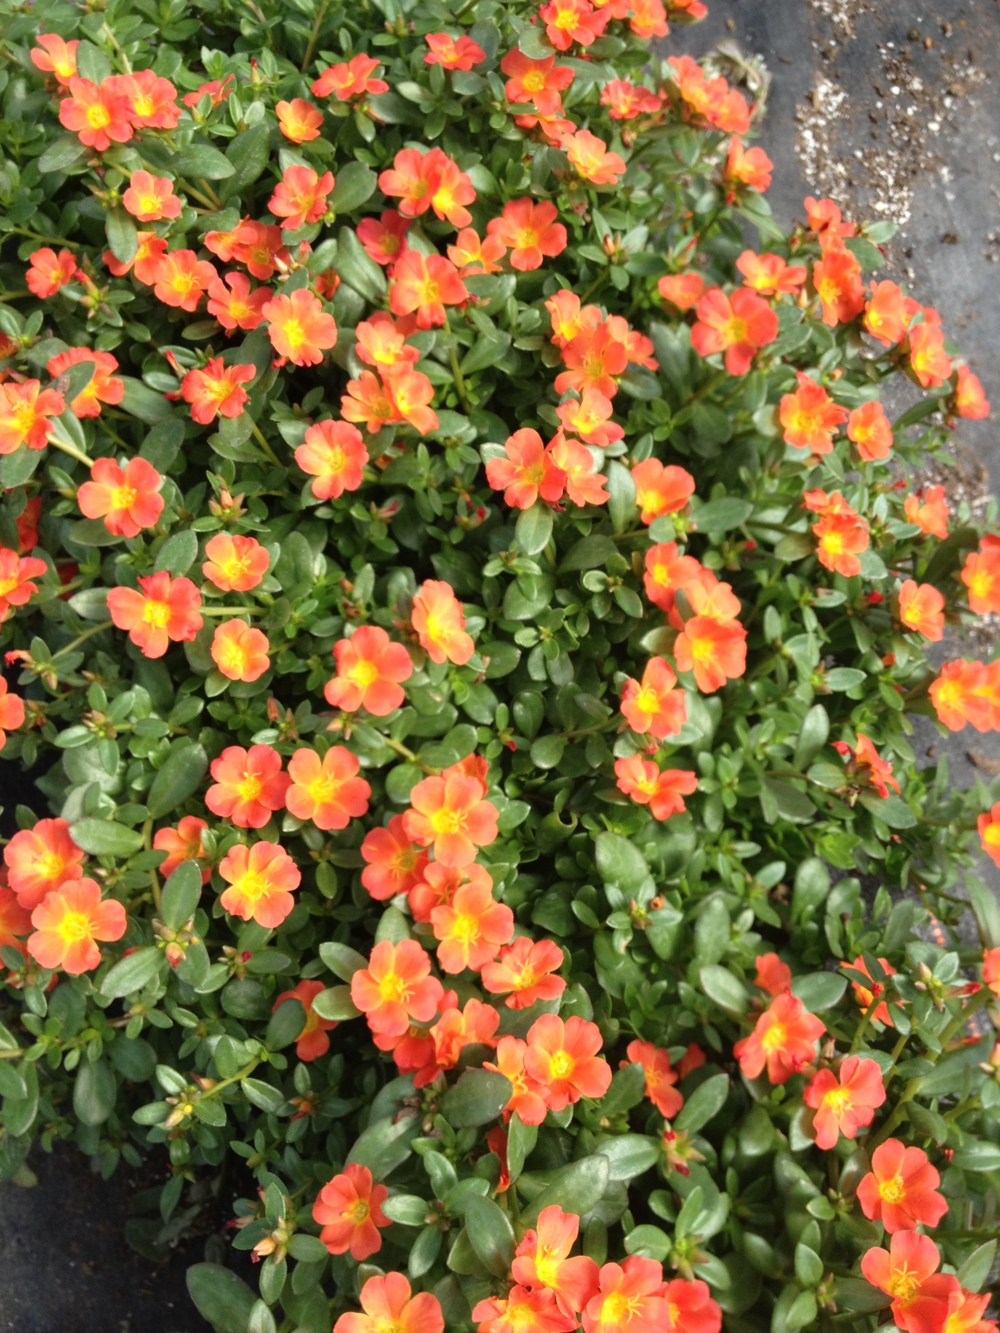 "Portulaca is a great late spring and summer plant that thrives in hot conditions. While it's low maintenance it doesn't lack in color and flowers. Once people buy Portulaca they usually end up coming back for me. We have Portulaca available in 4.5"" pots and 10"" hanging baskets."